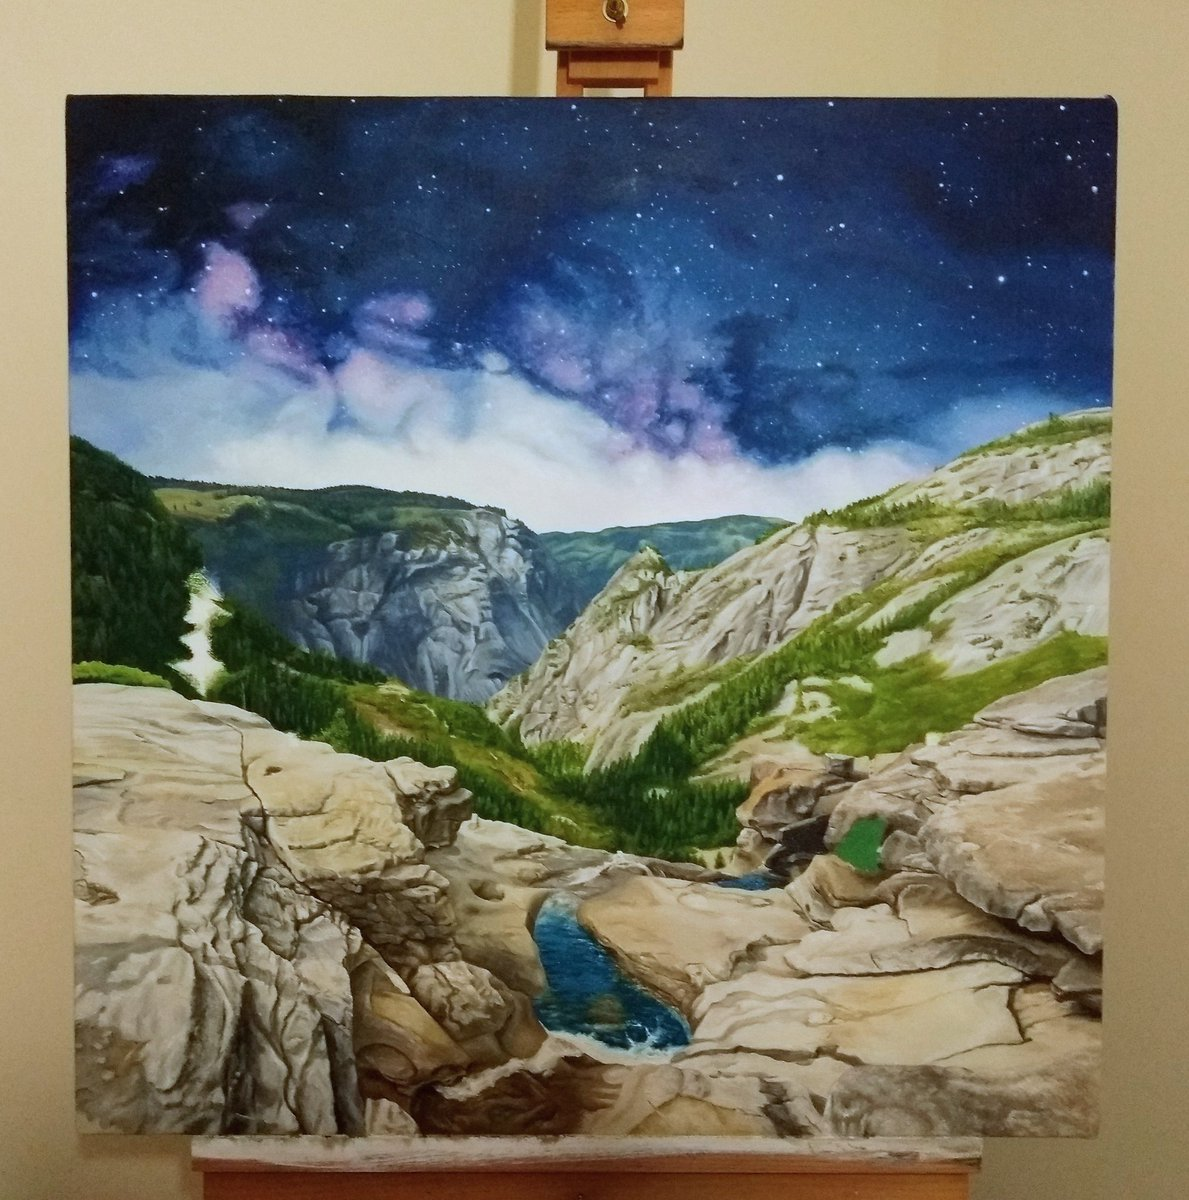 test Twitter Media - Nevada Falls, Yosemite. Work in progress but getting close now. #oilpainting https://t.co/GLtUbQ9pEx